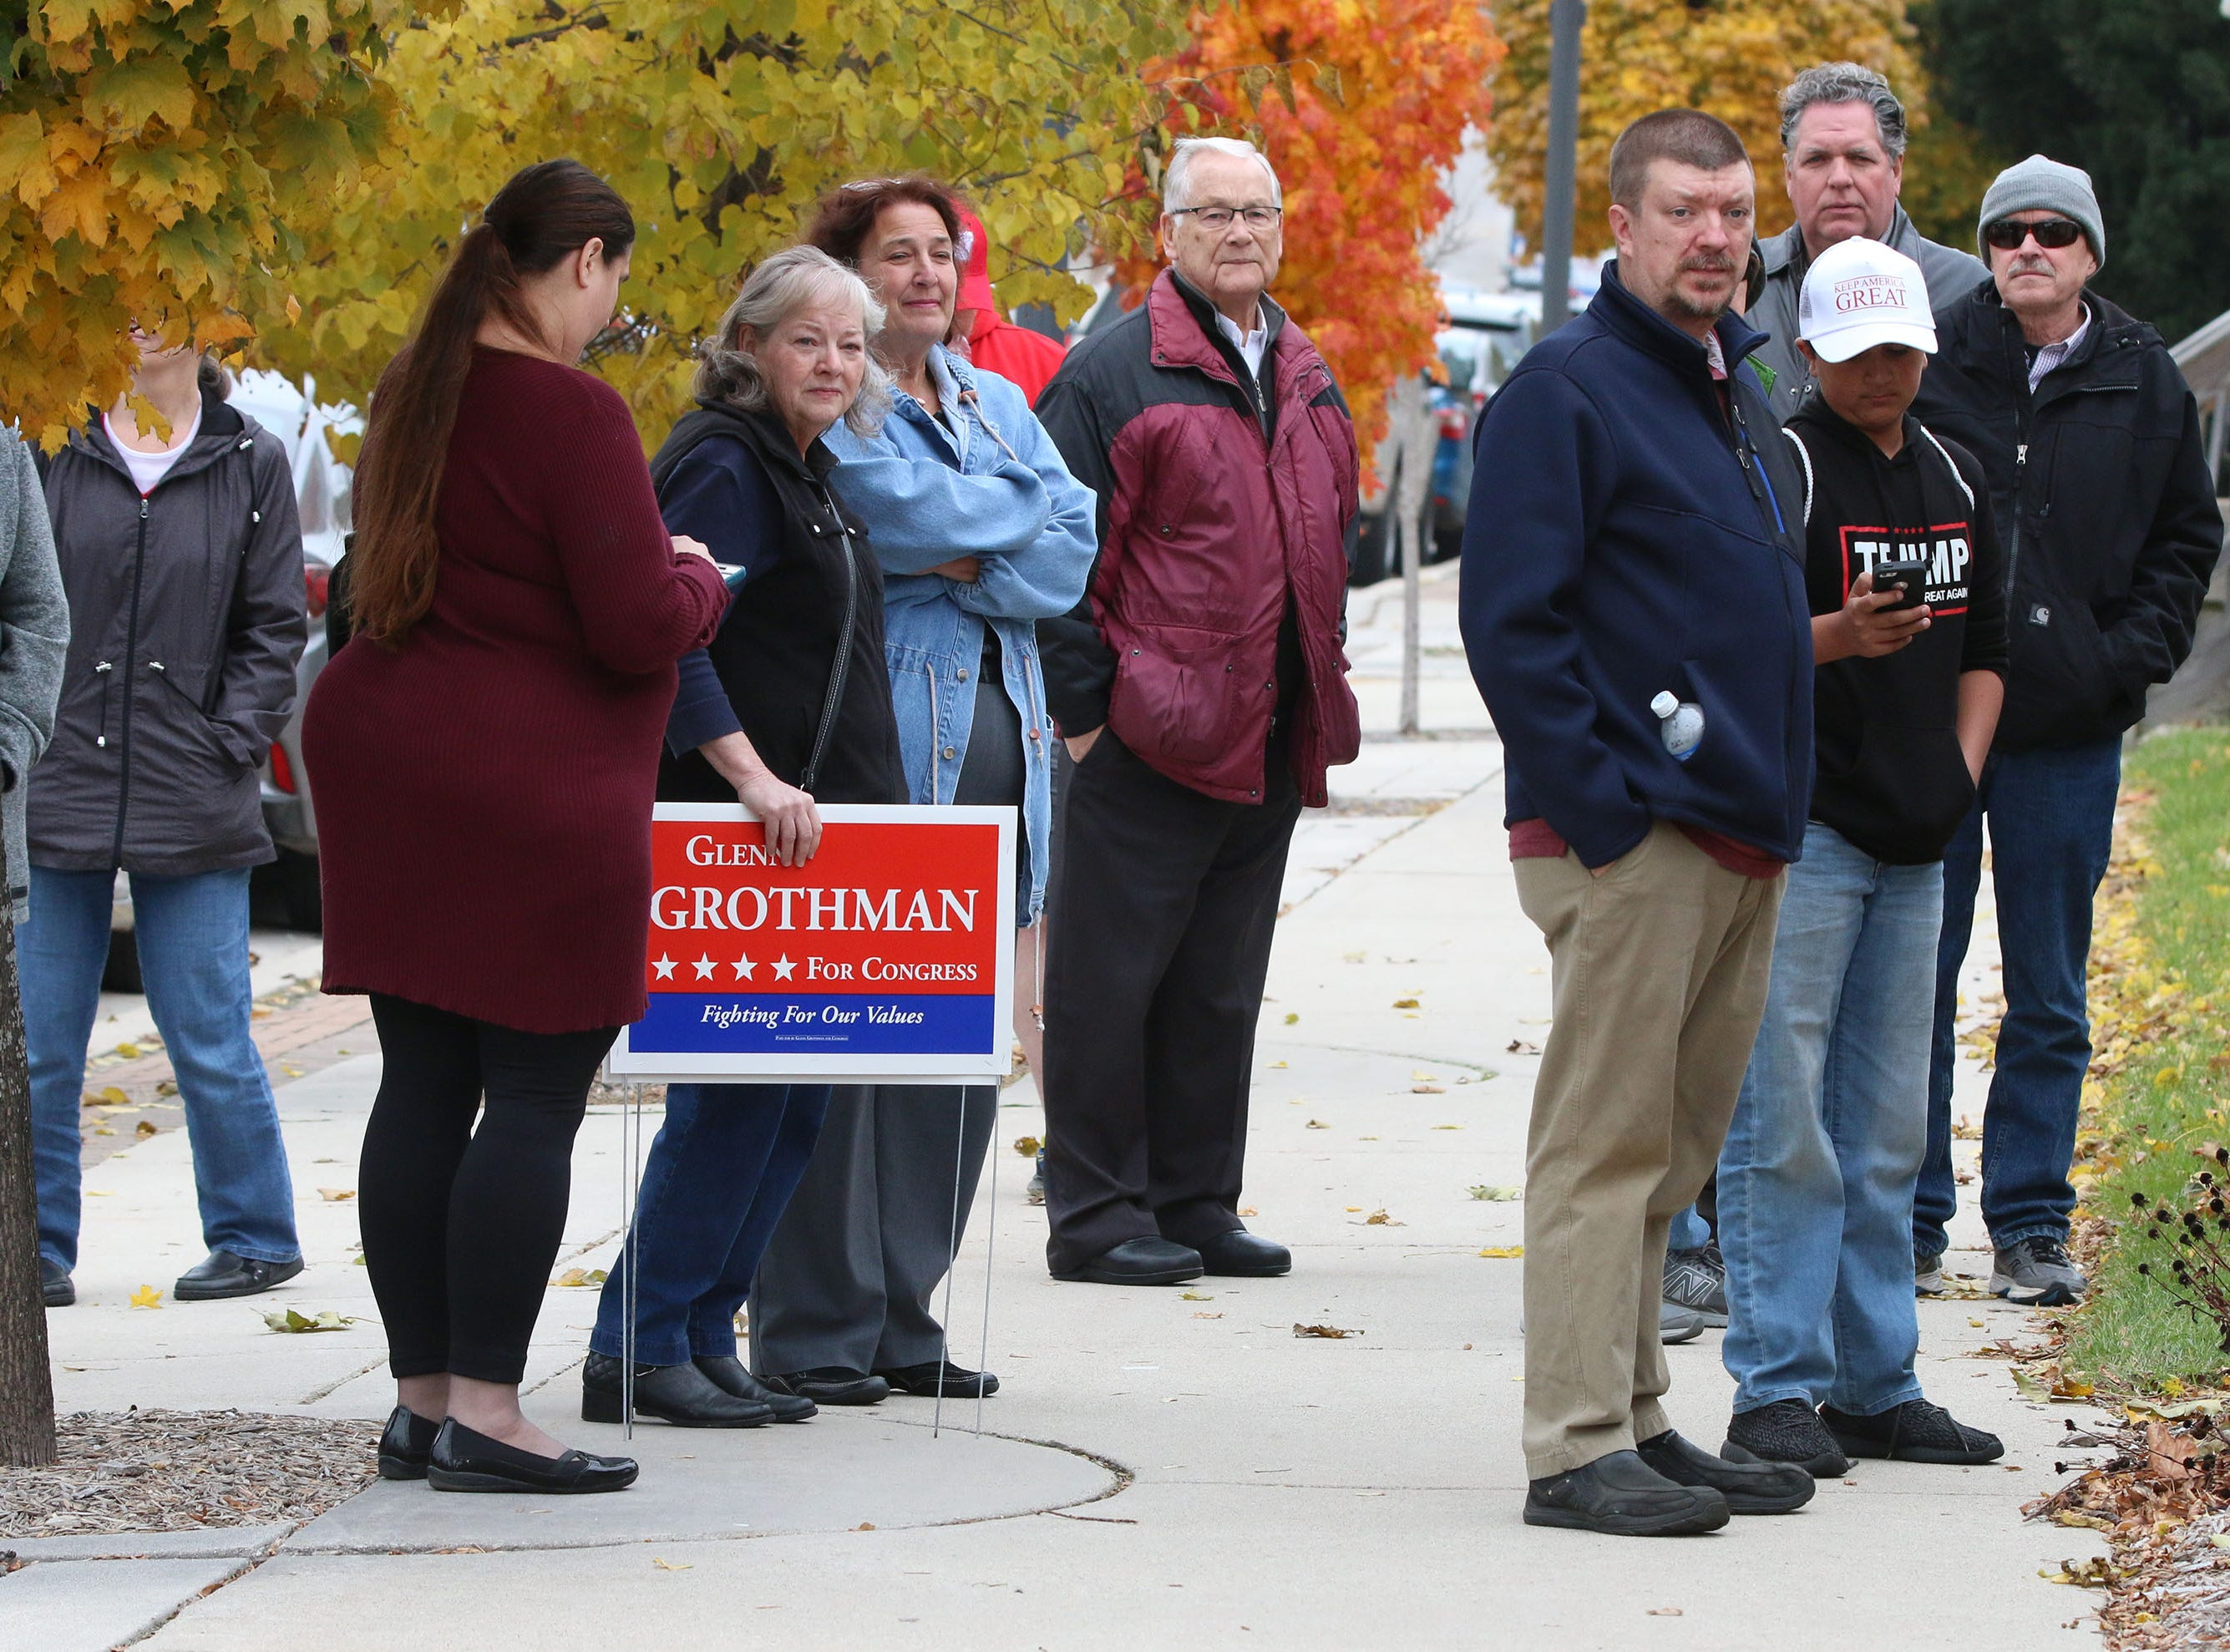 People wait for entry to the GOP campaign rally at the GOP Headquarters, Tuesday, October 30, 2018, in Sheboygan, Wis.